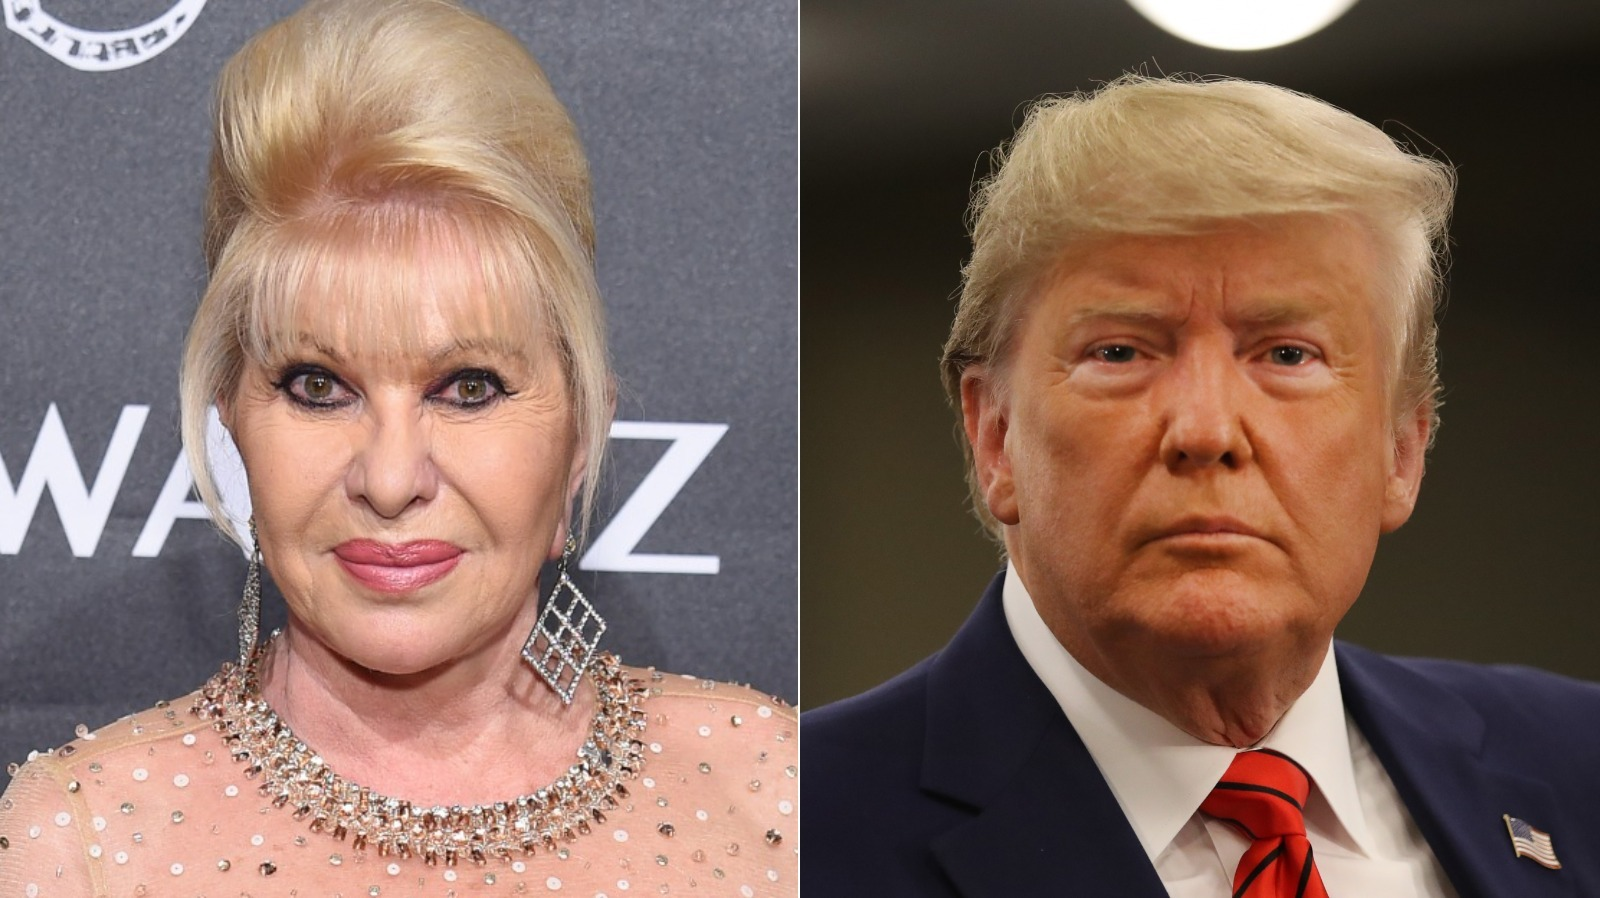 Body Language Expert Reveals The Truth About Ivana Trump And Donald Trump's Relationship